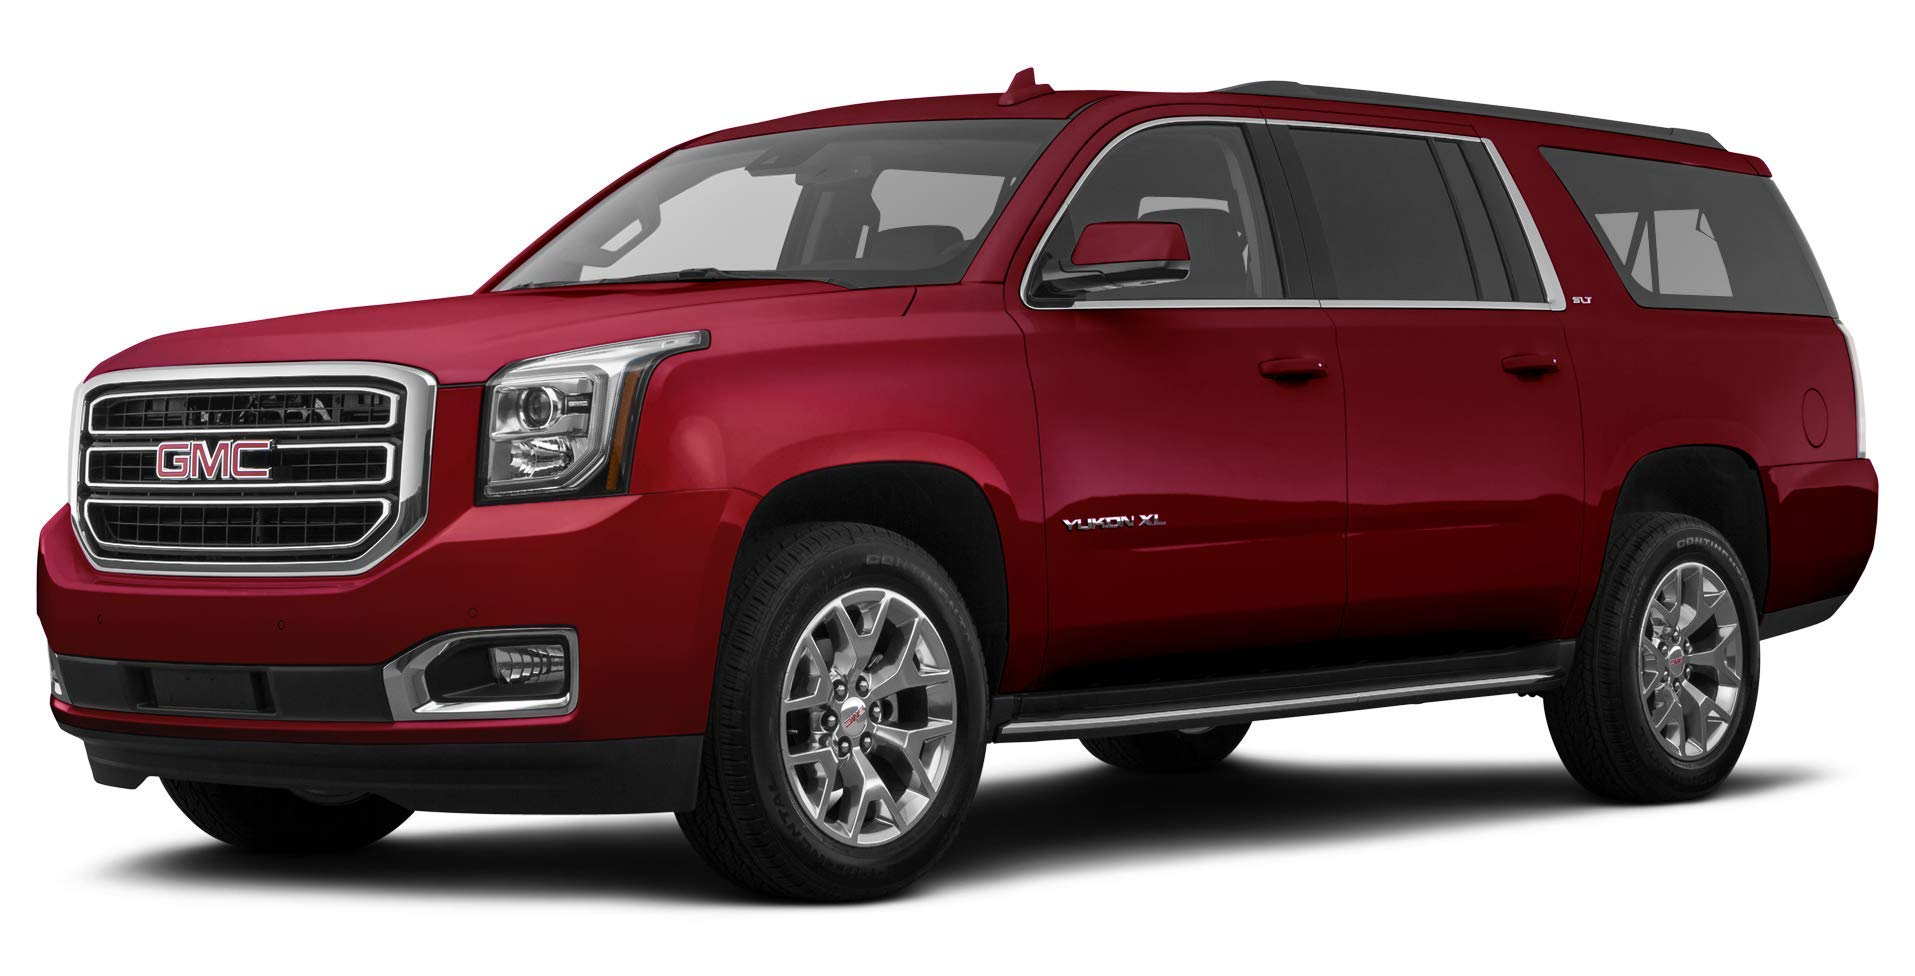 Amazon.com: 2019 GMC Yukon XL Denali Reviews, Images, and ...